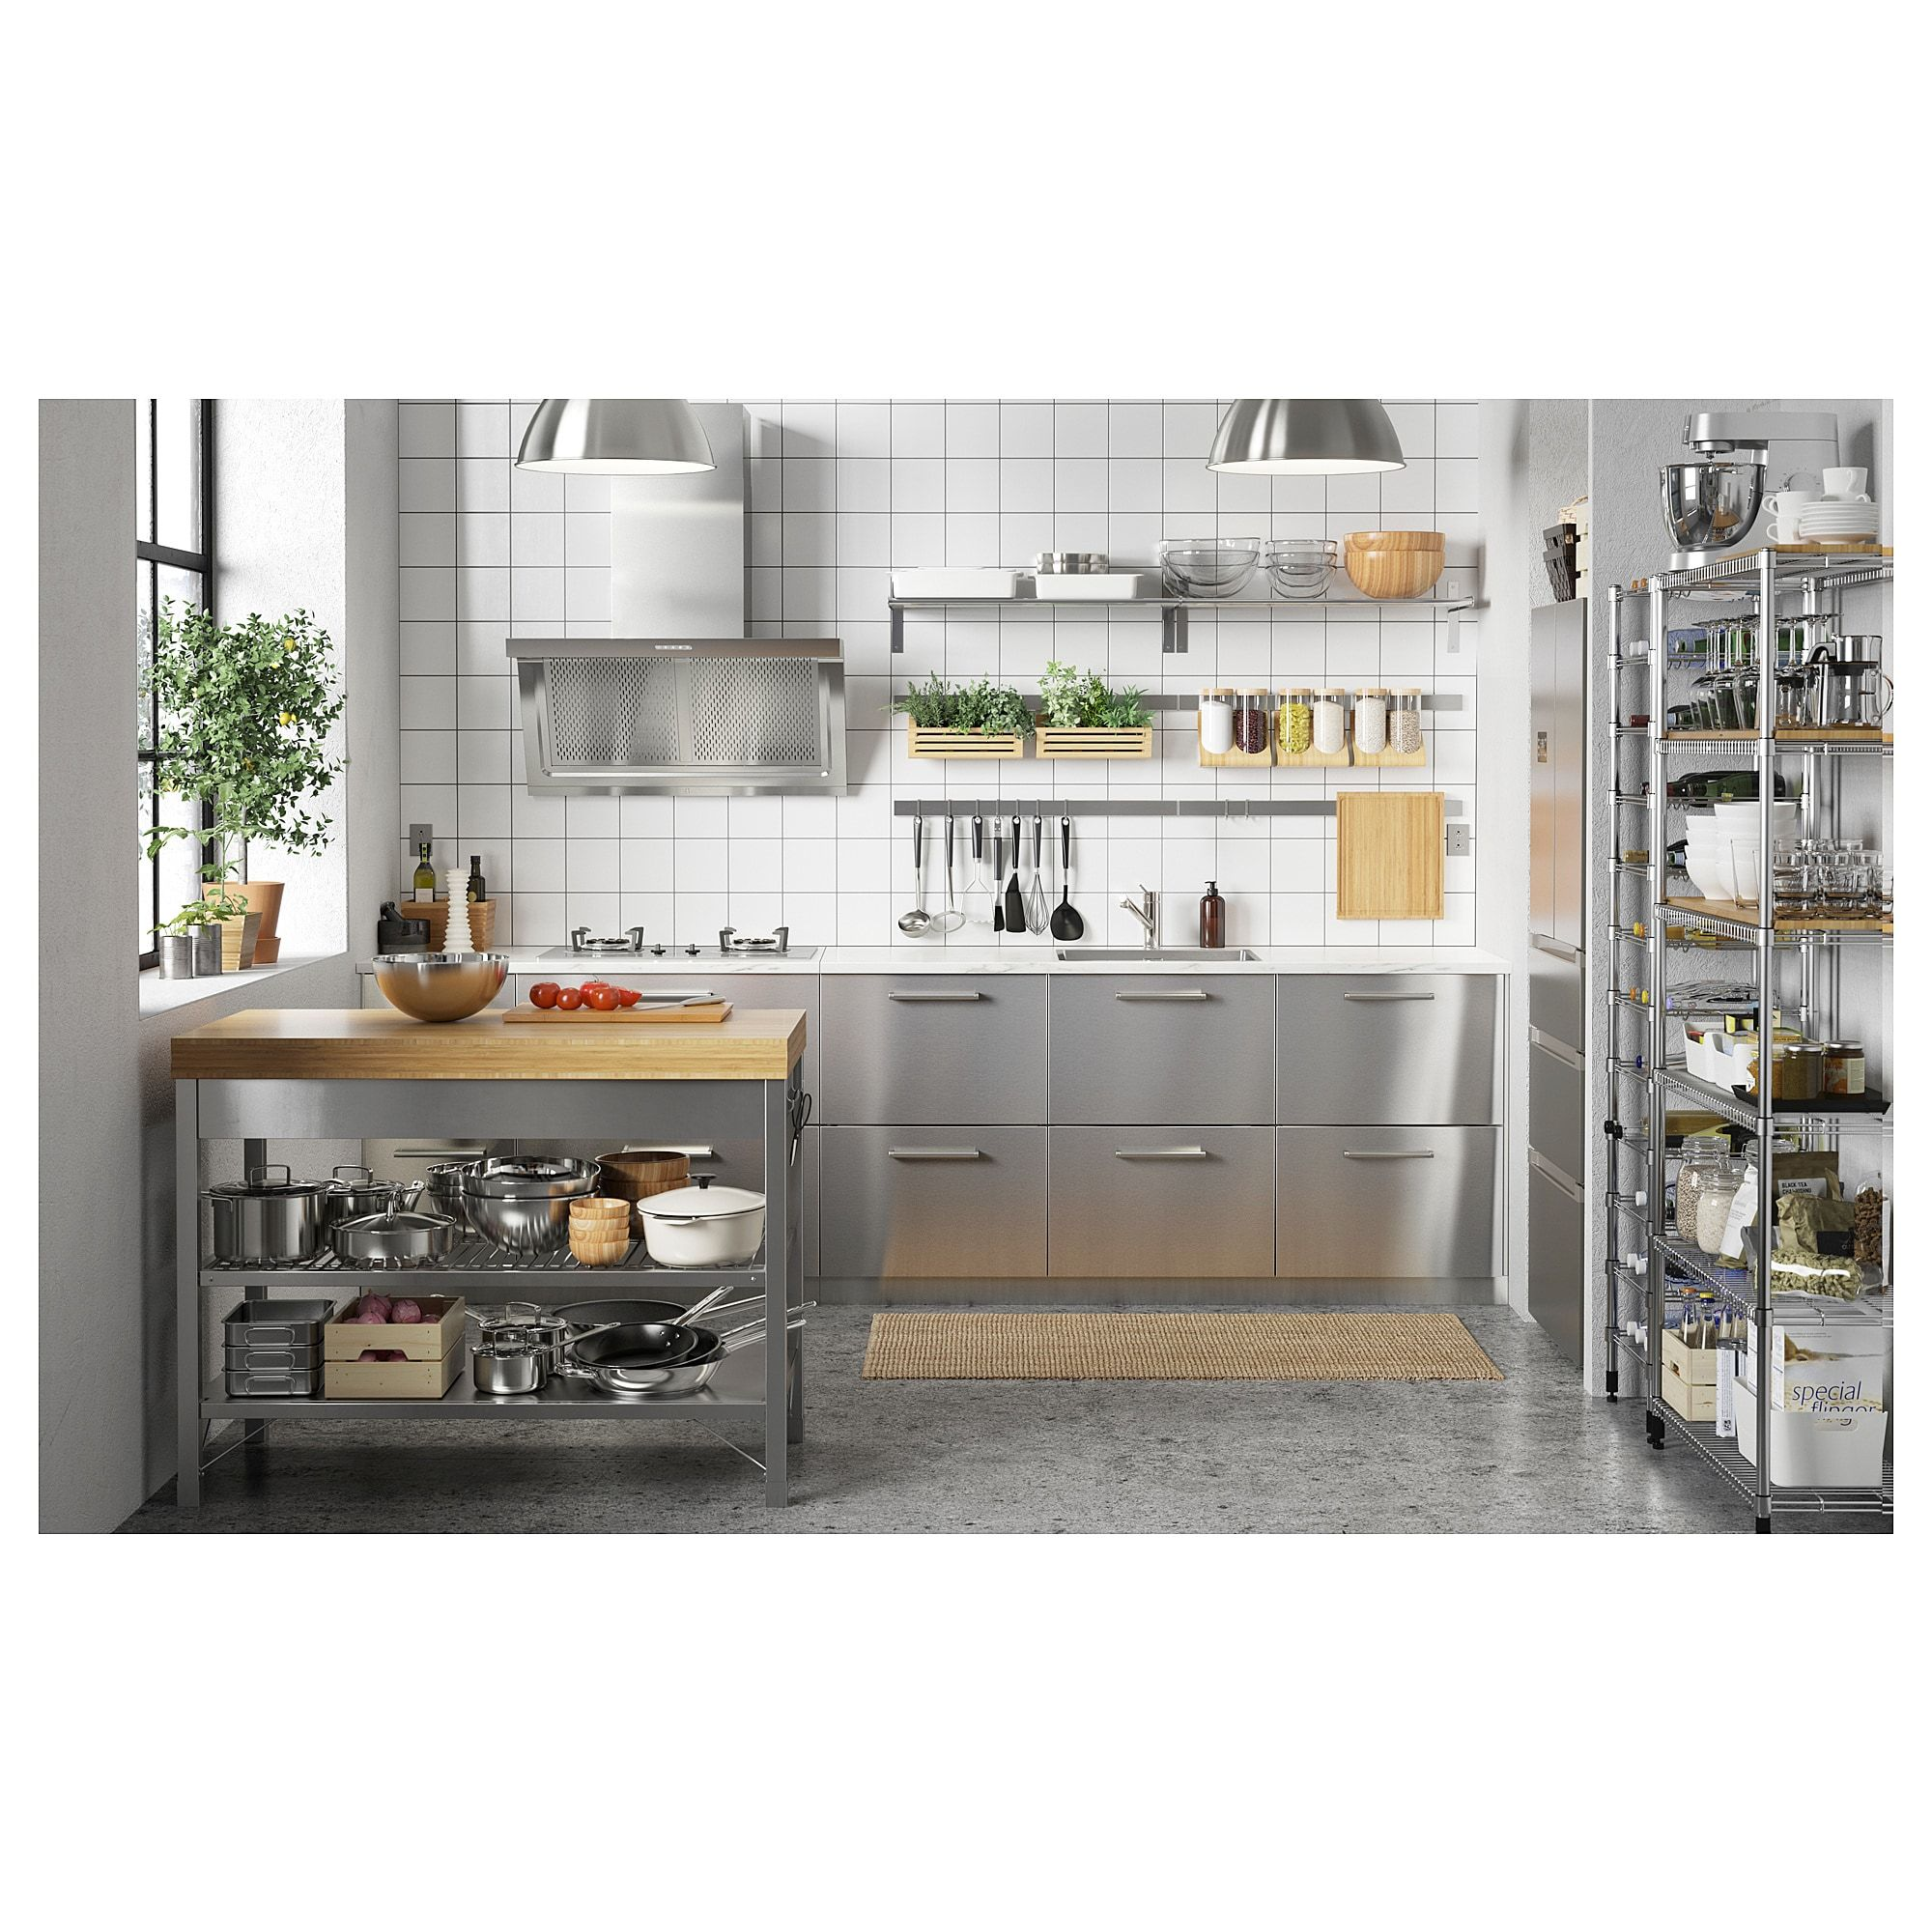 Furniture Home Furnishings Find Your Inspiration Ikea Kitchen Design Ikea Kitchen Storage Commercial Kitchen Design